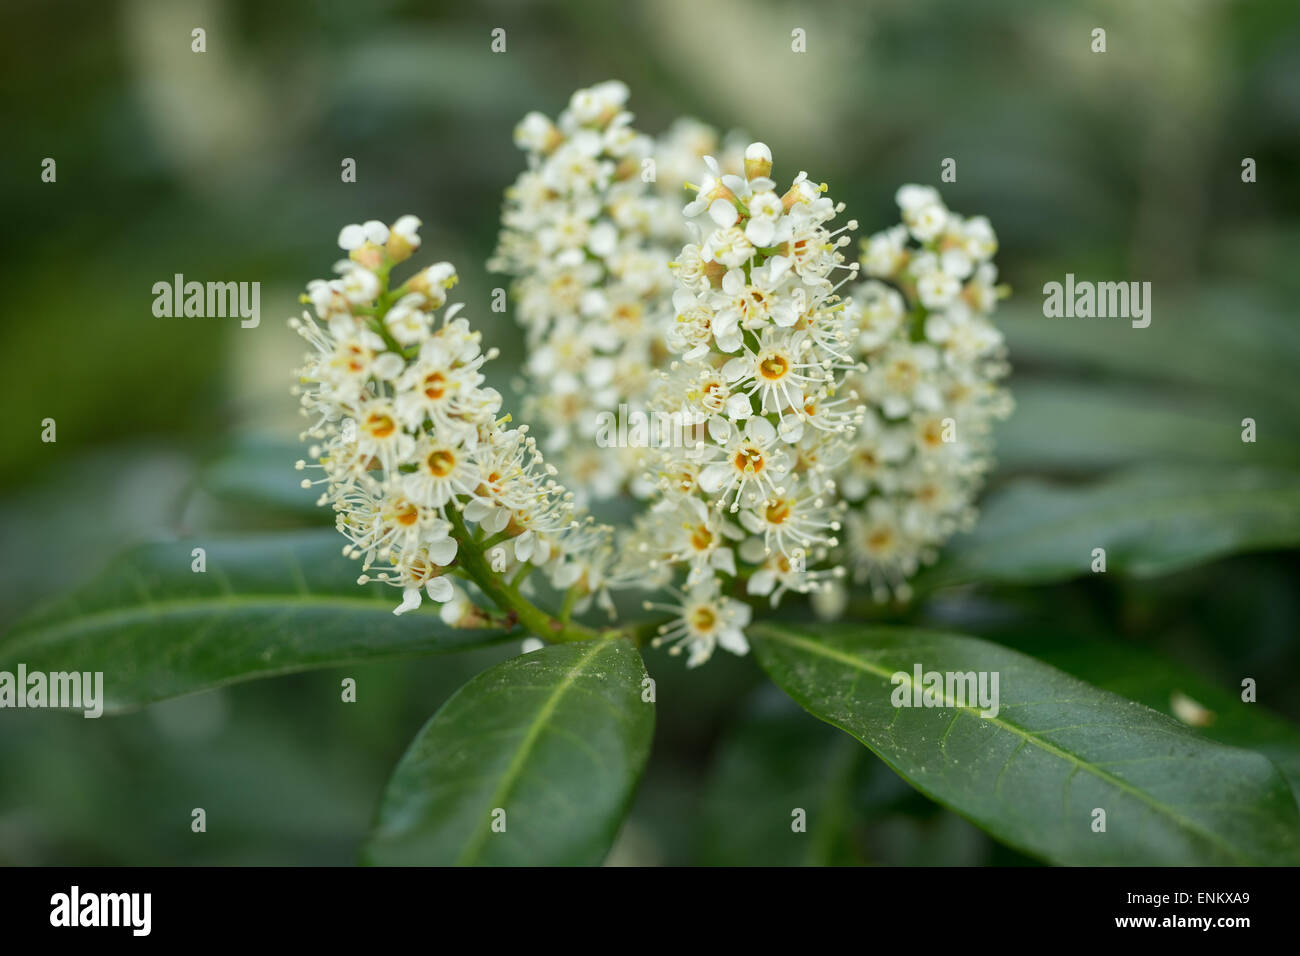 Cherry laurel white spring blossom Prunus laurocerasus - Stock Image